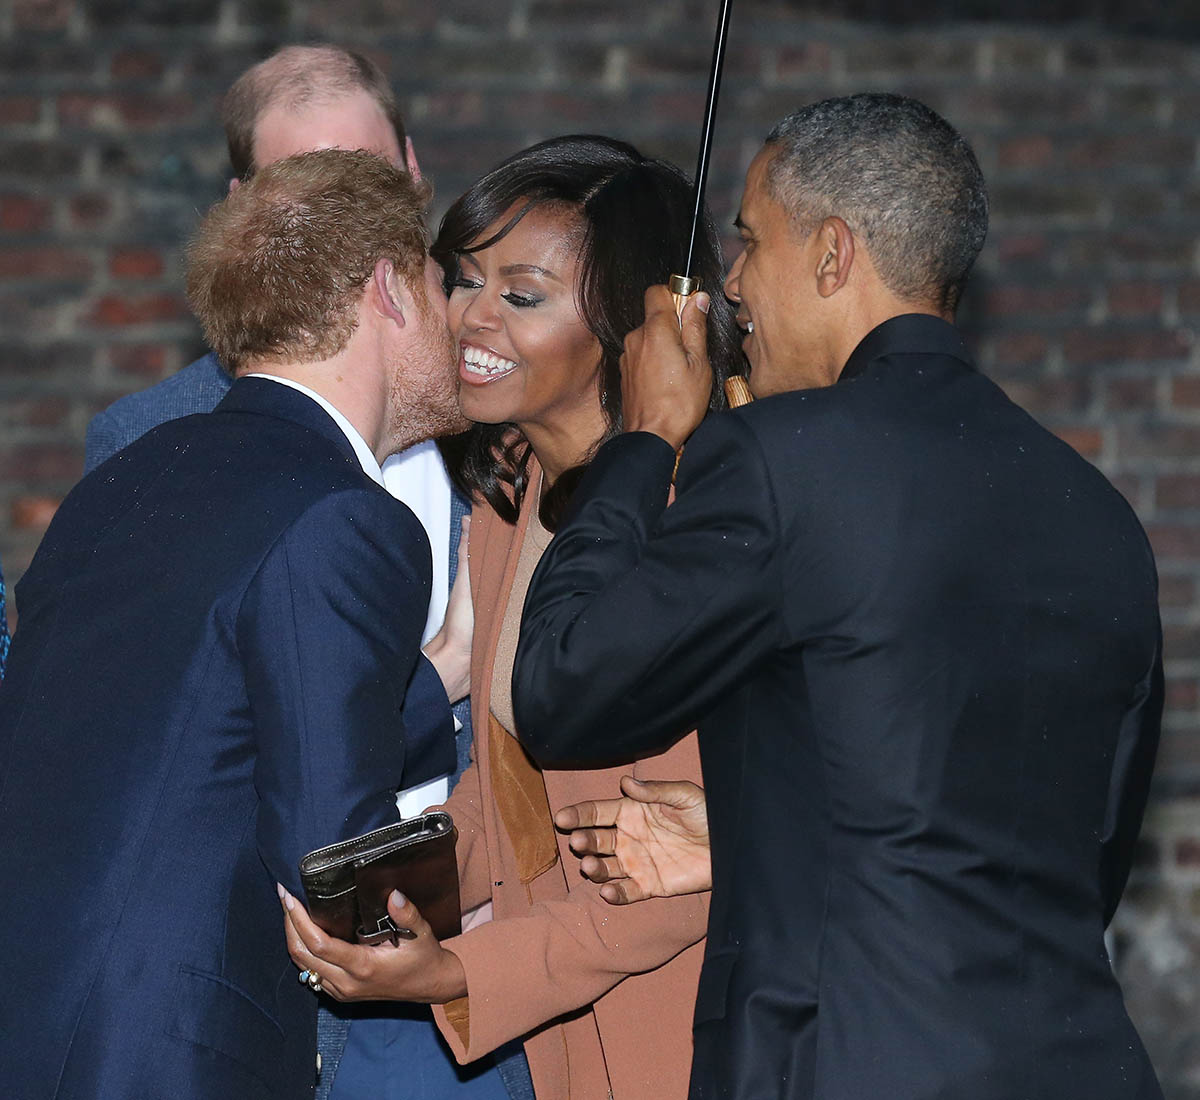 The Obamas Dine At Kensington Palace with Kate Middleton, Prince William and Prince Harry